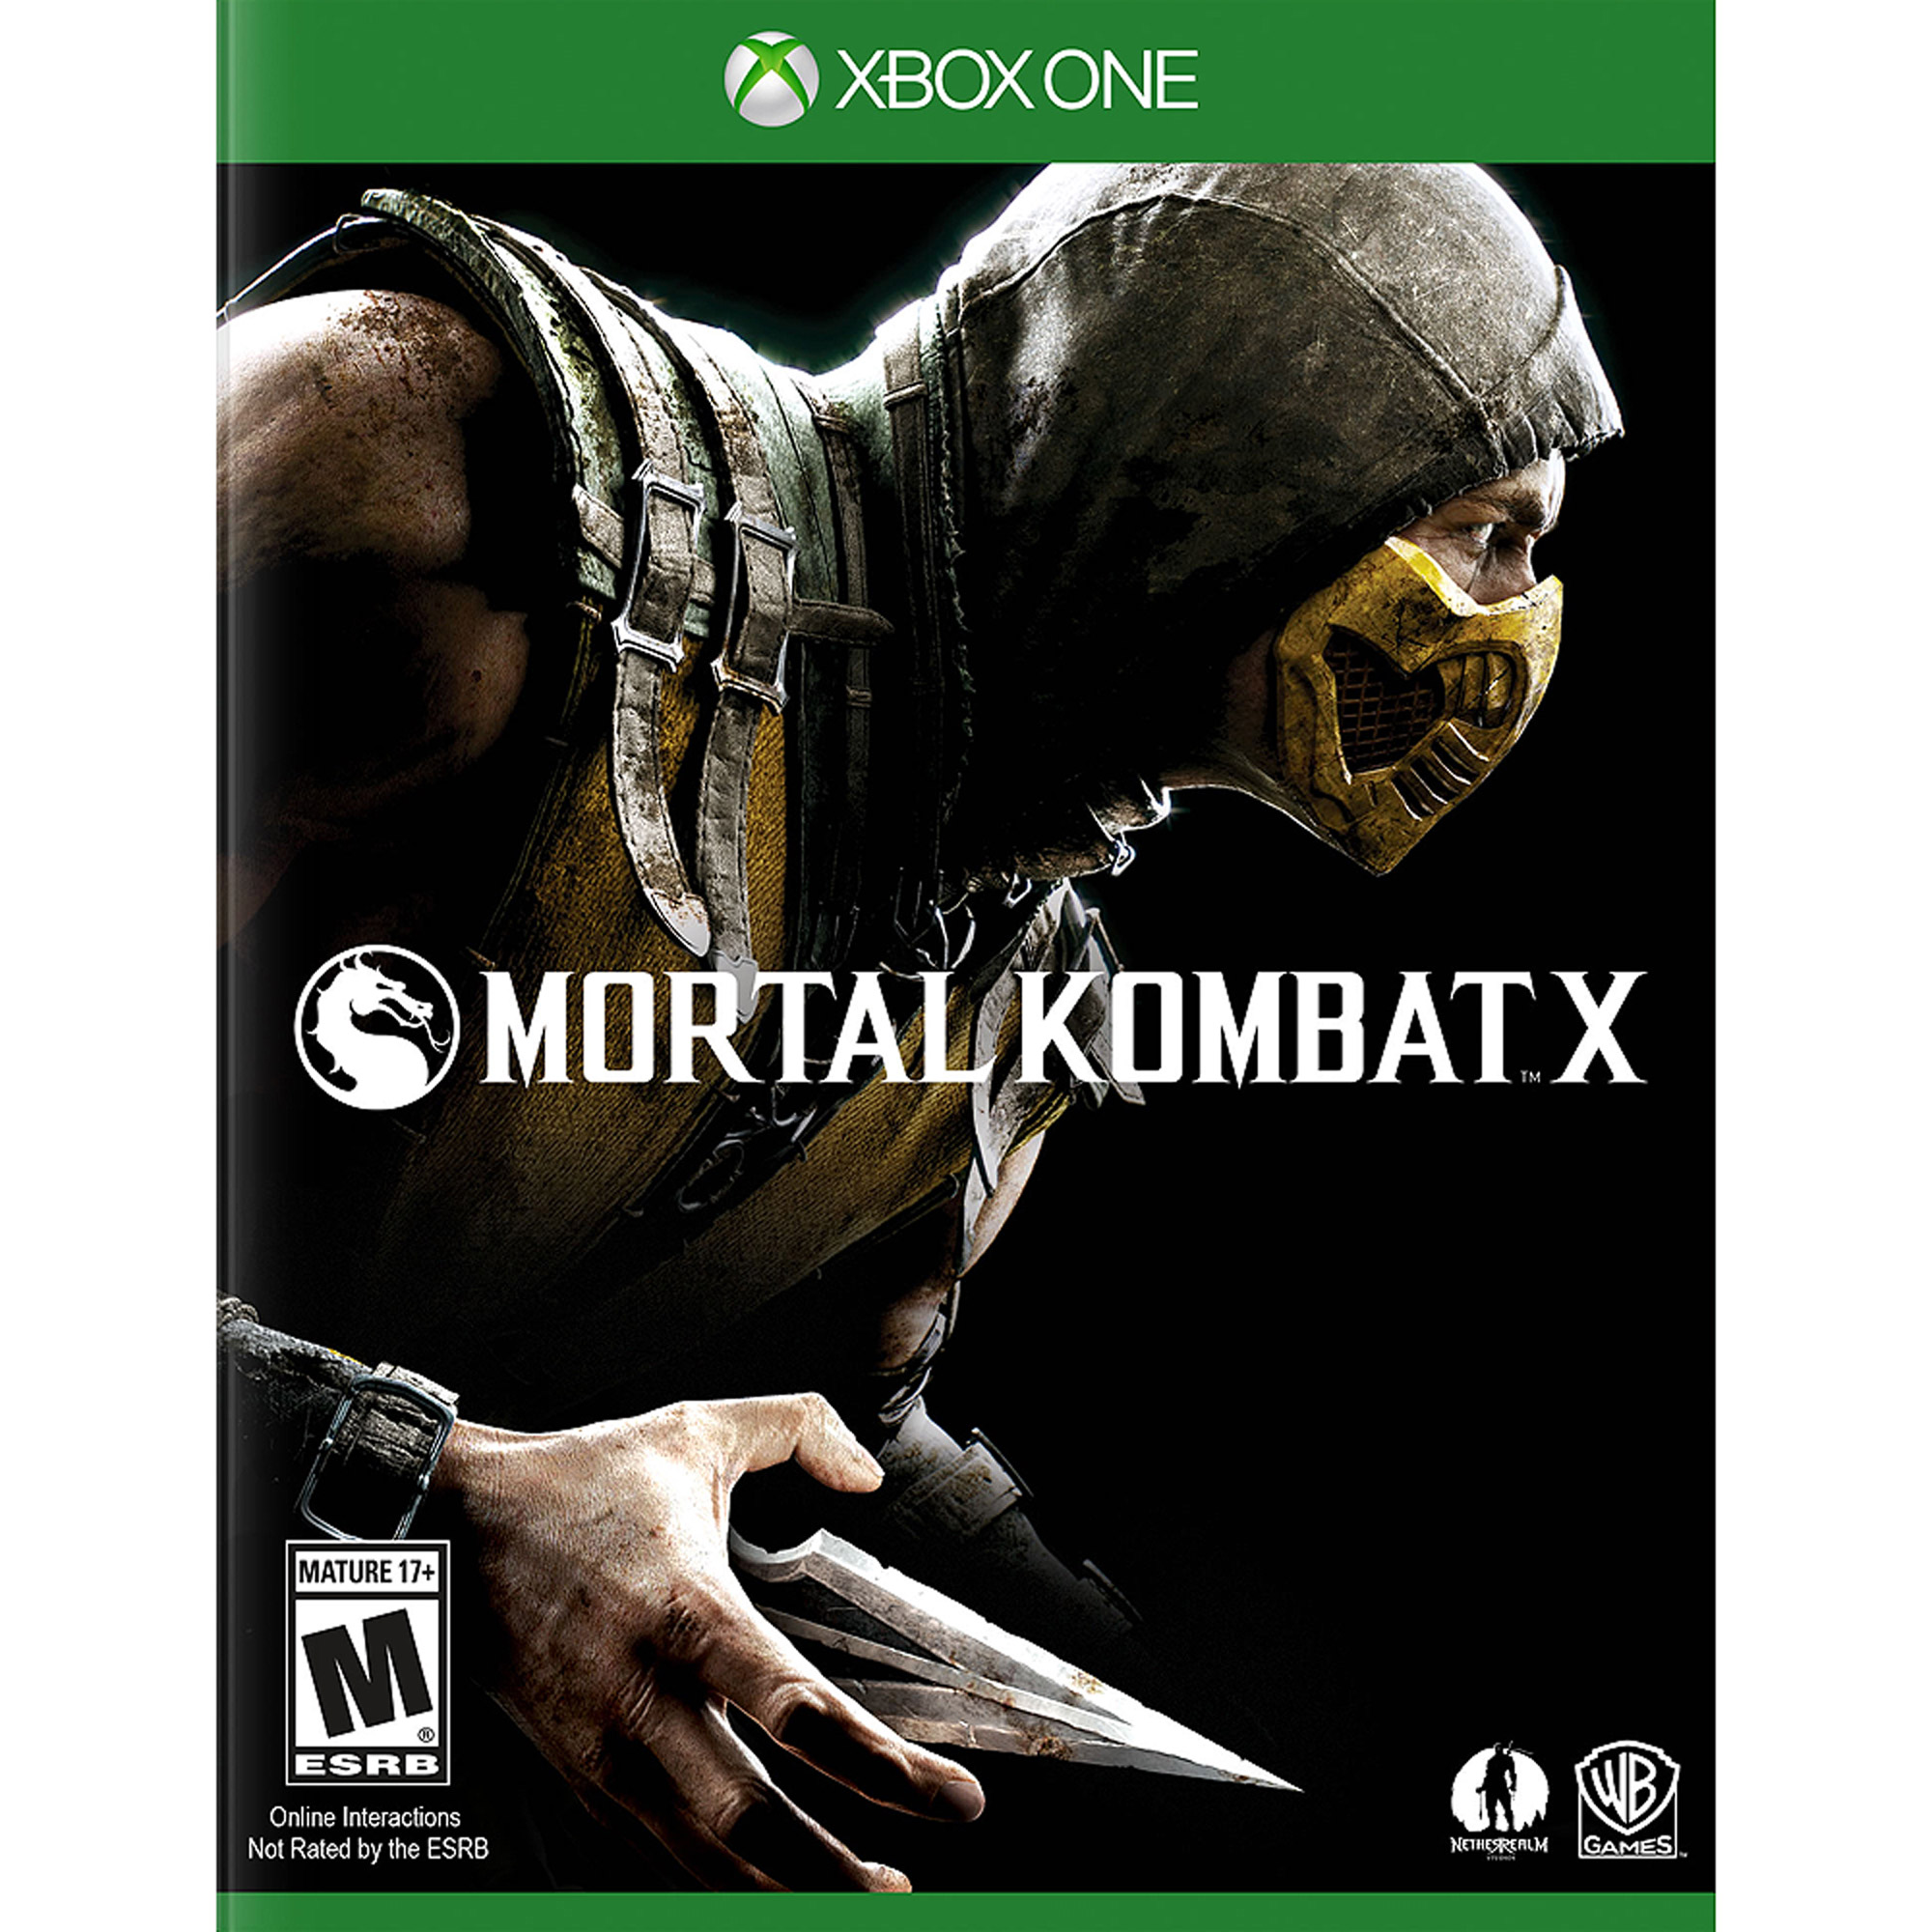 Mortal Kombat X for Xbox One by Warner Bros